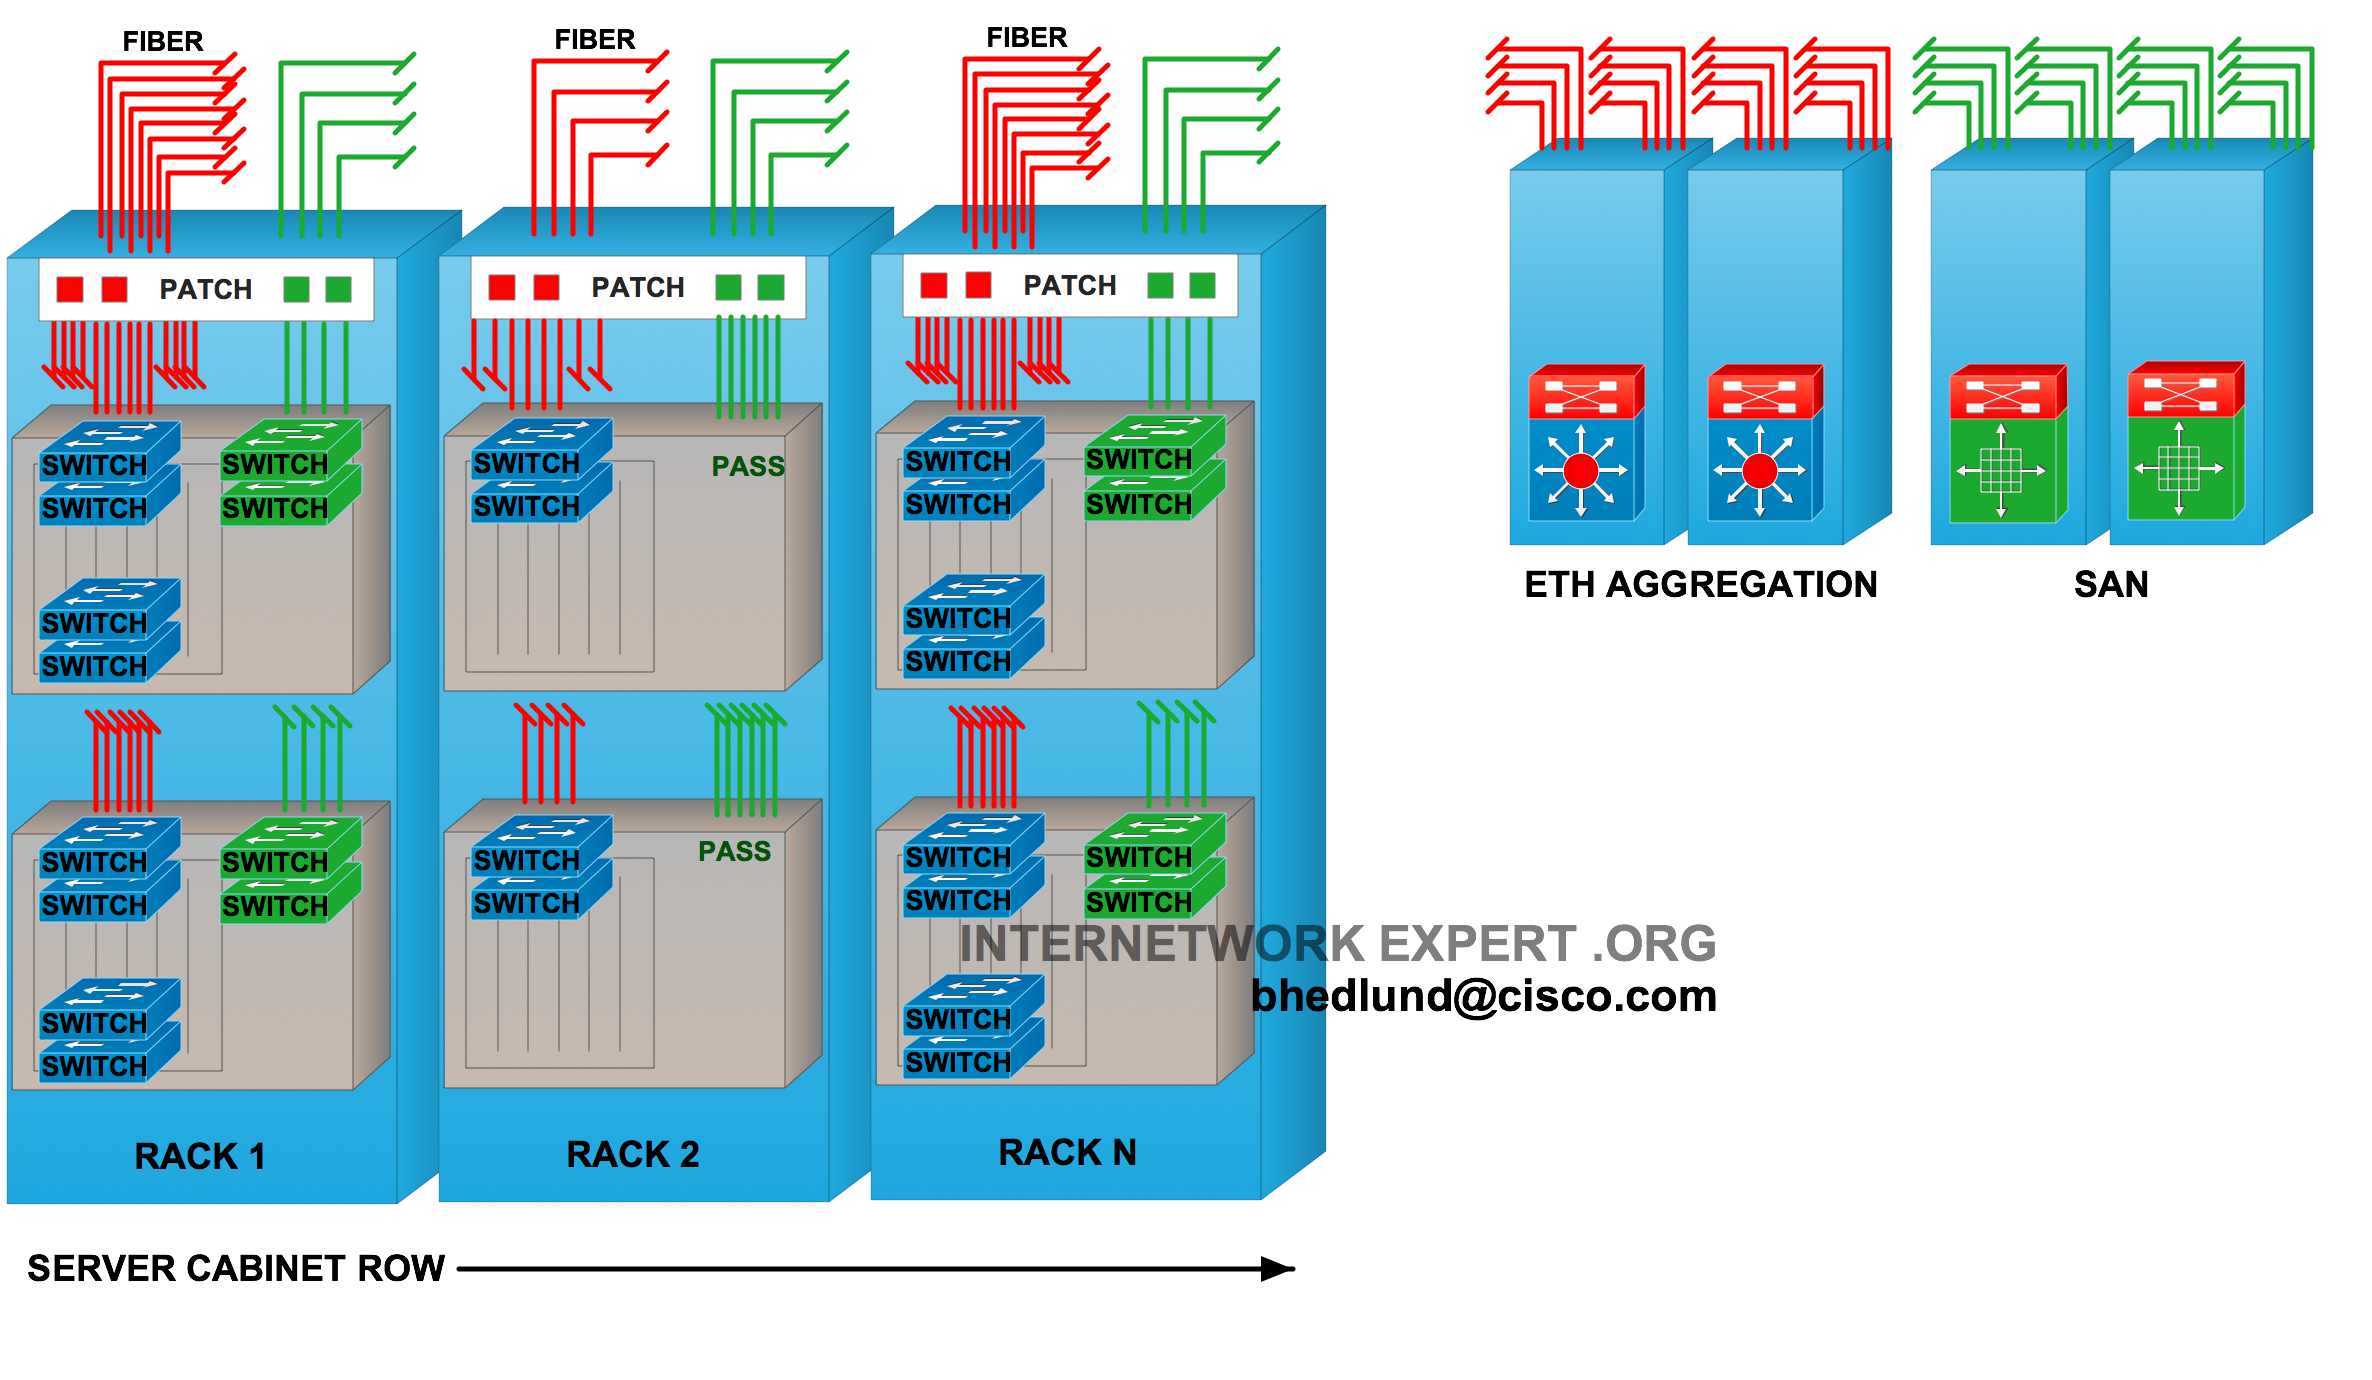 Figure 2 - Blade enclosures with integrated Ethernet and FC switching